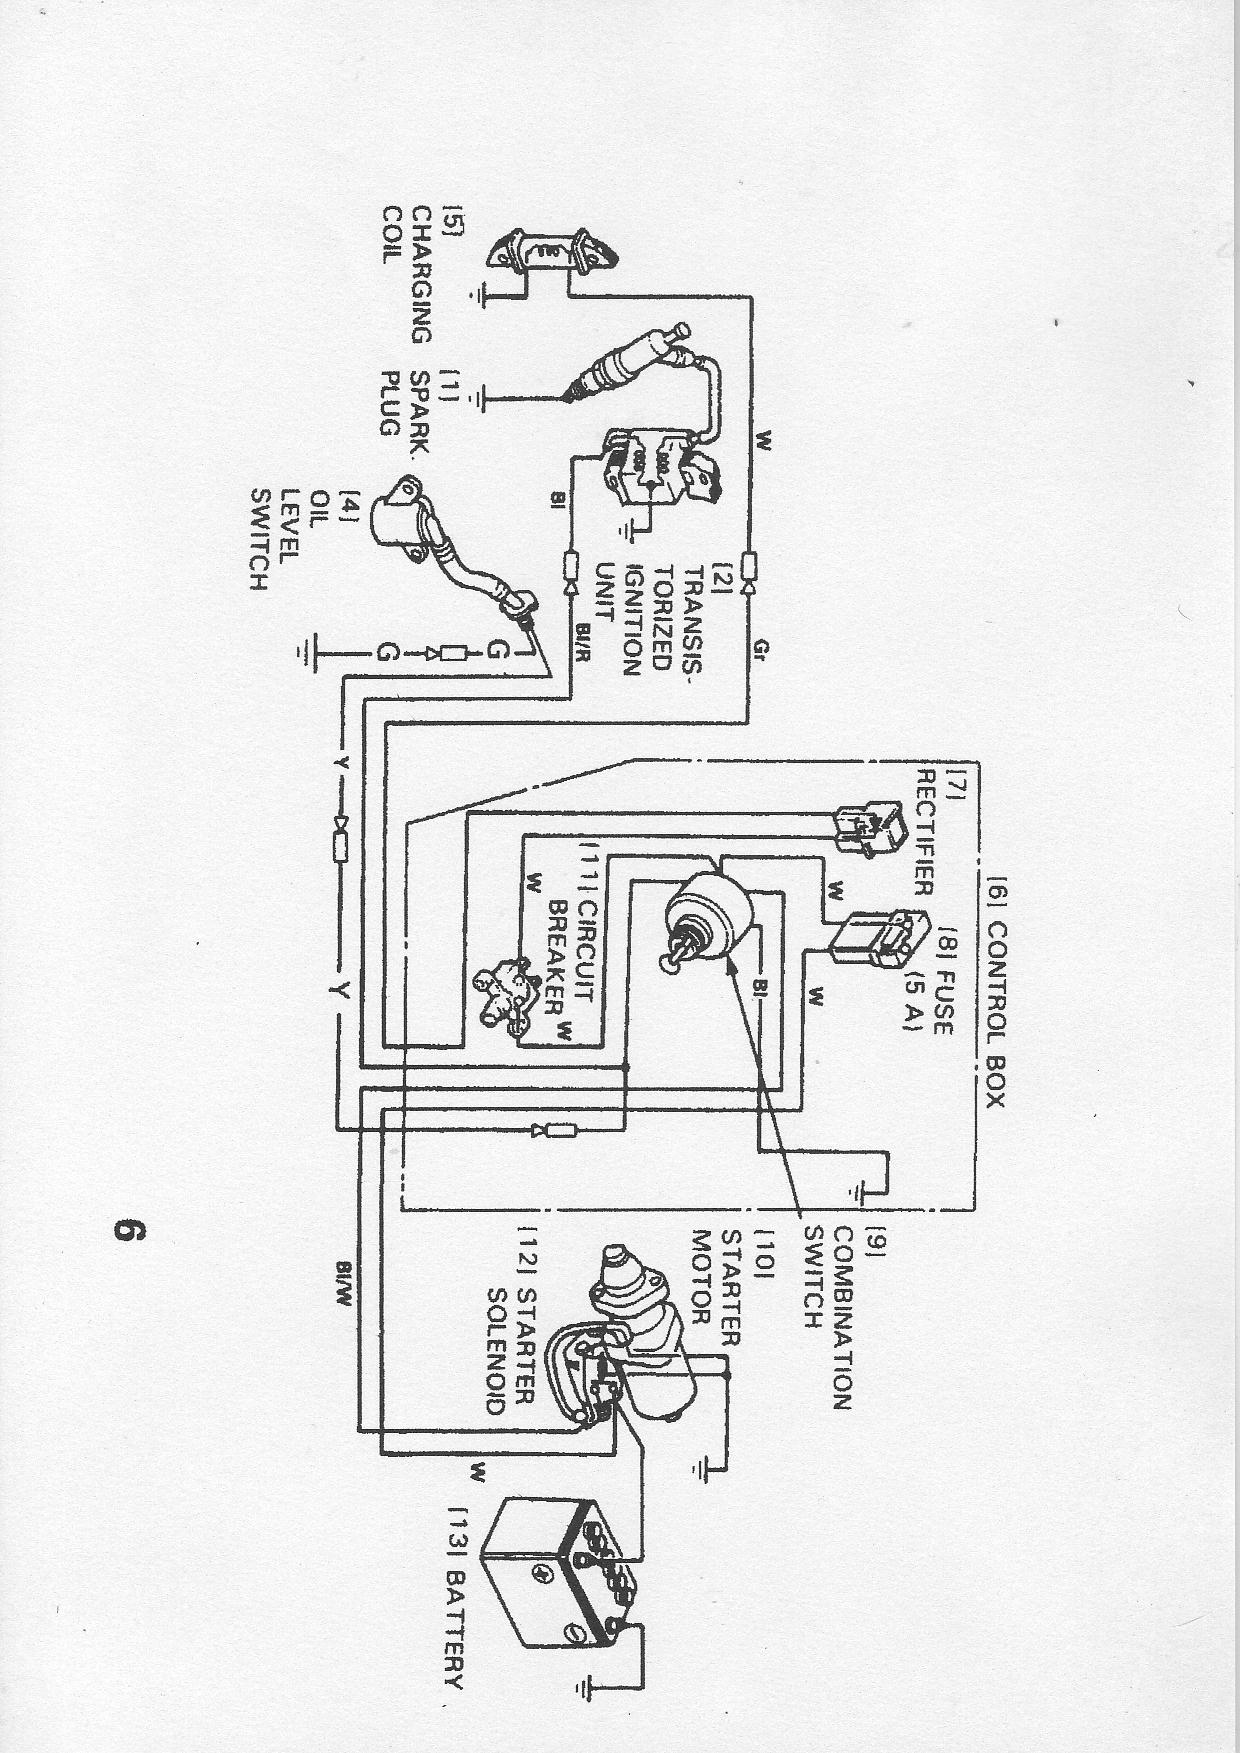 Gx340 Wiring Diagram Everything About Schematic To Switch Honda Gx240 Schematics Rh Ksefanzone Com Simple Diagrams Light